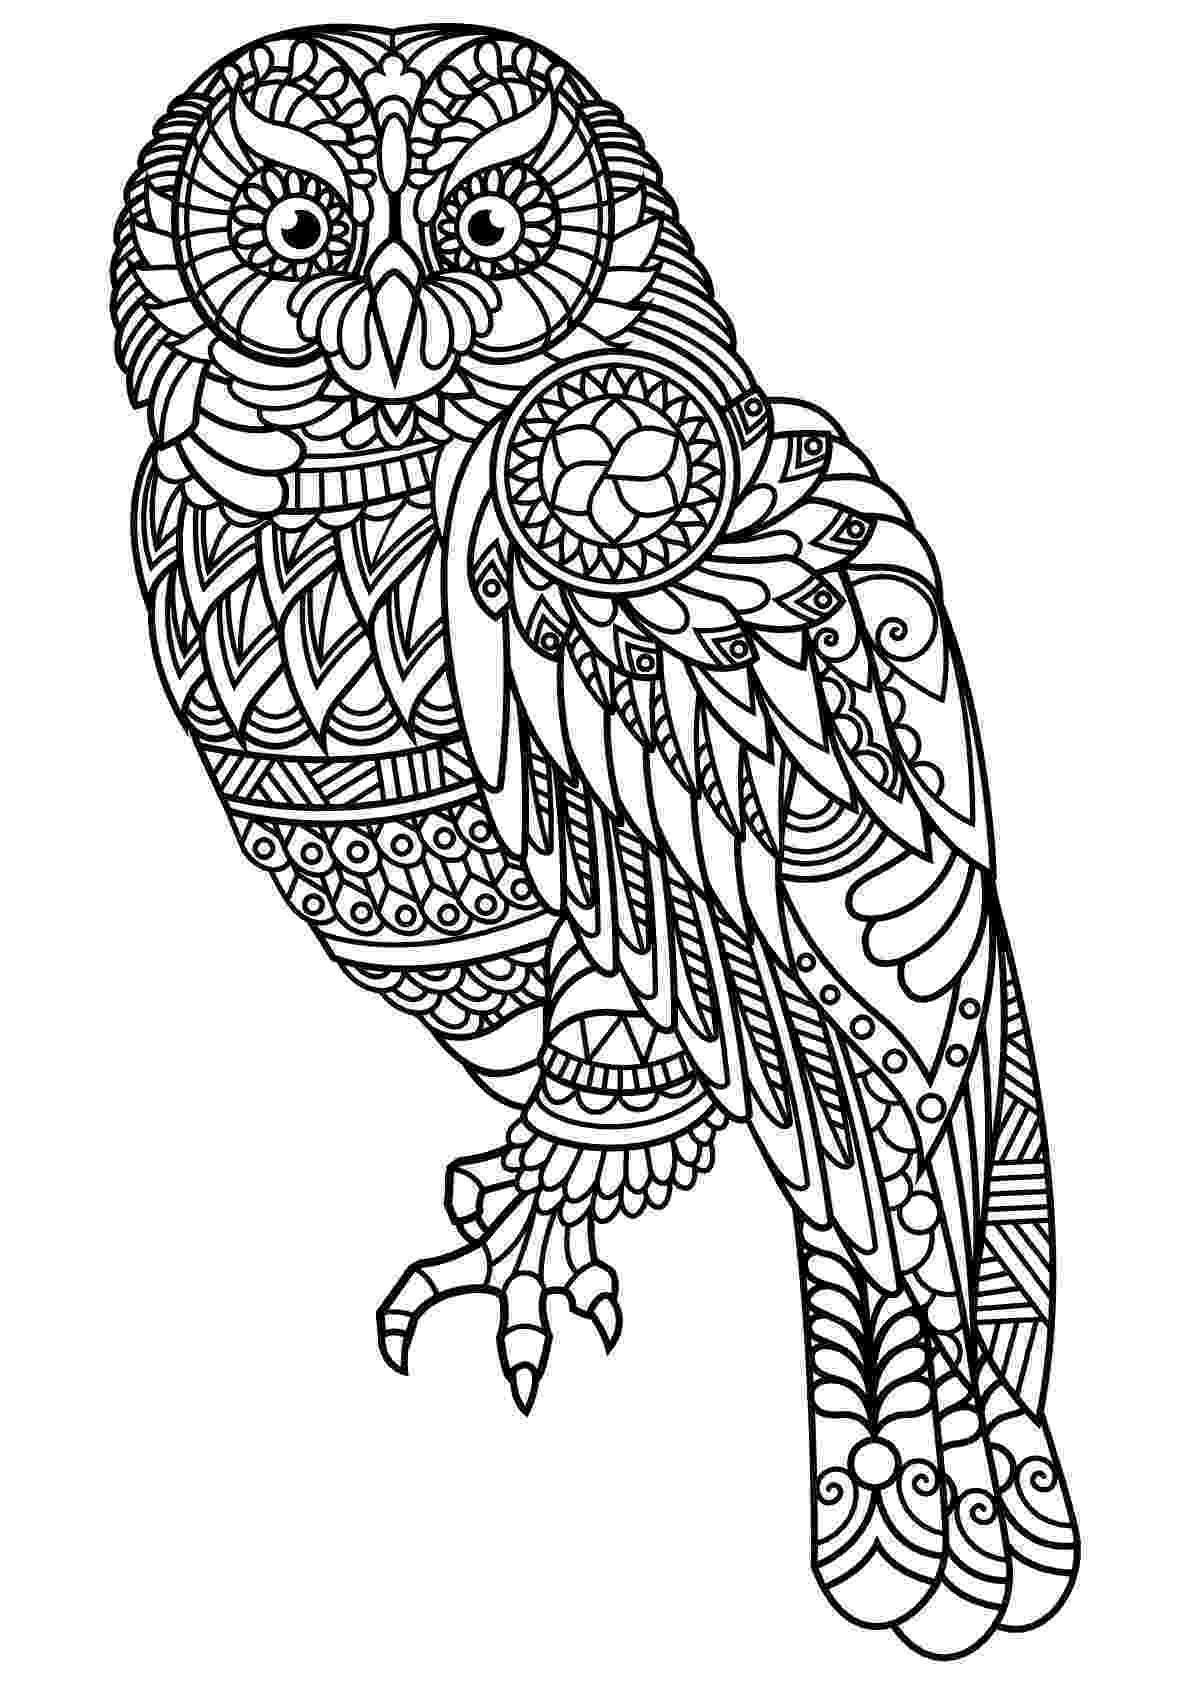 coloring pages for adults with owls free book owl owls adult coloring pages coloring owls for pages adults with